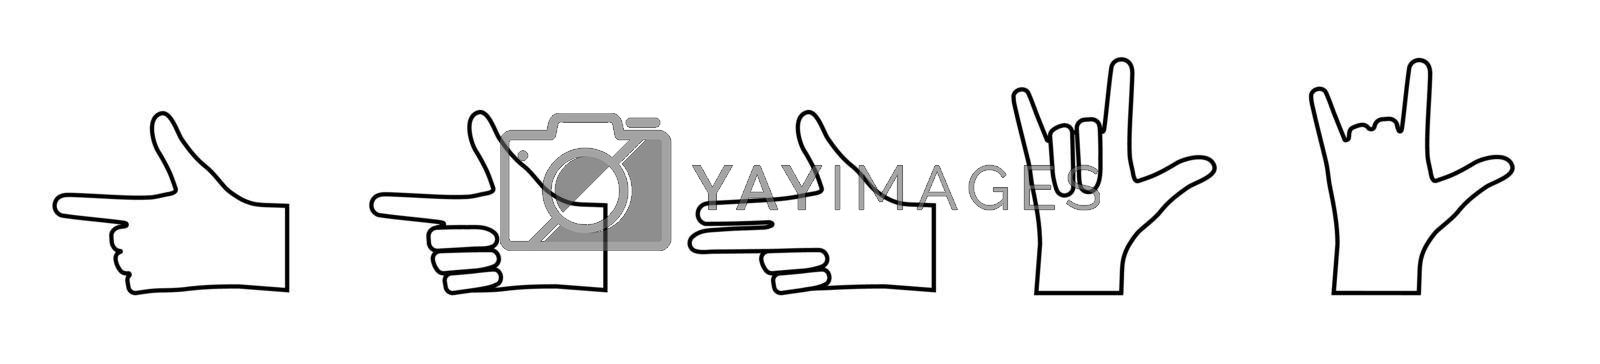 set of hand gestures with bent and pointing fingers. Icons in a linear style. Gesticulation. Vector on a white background